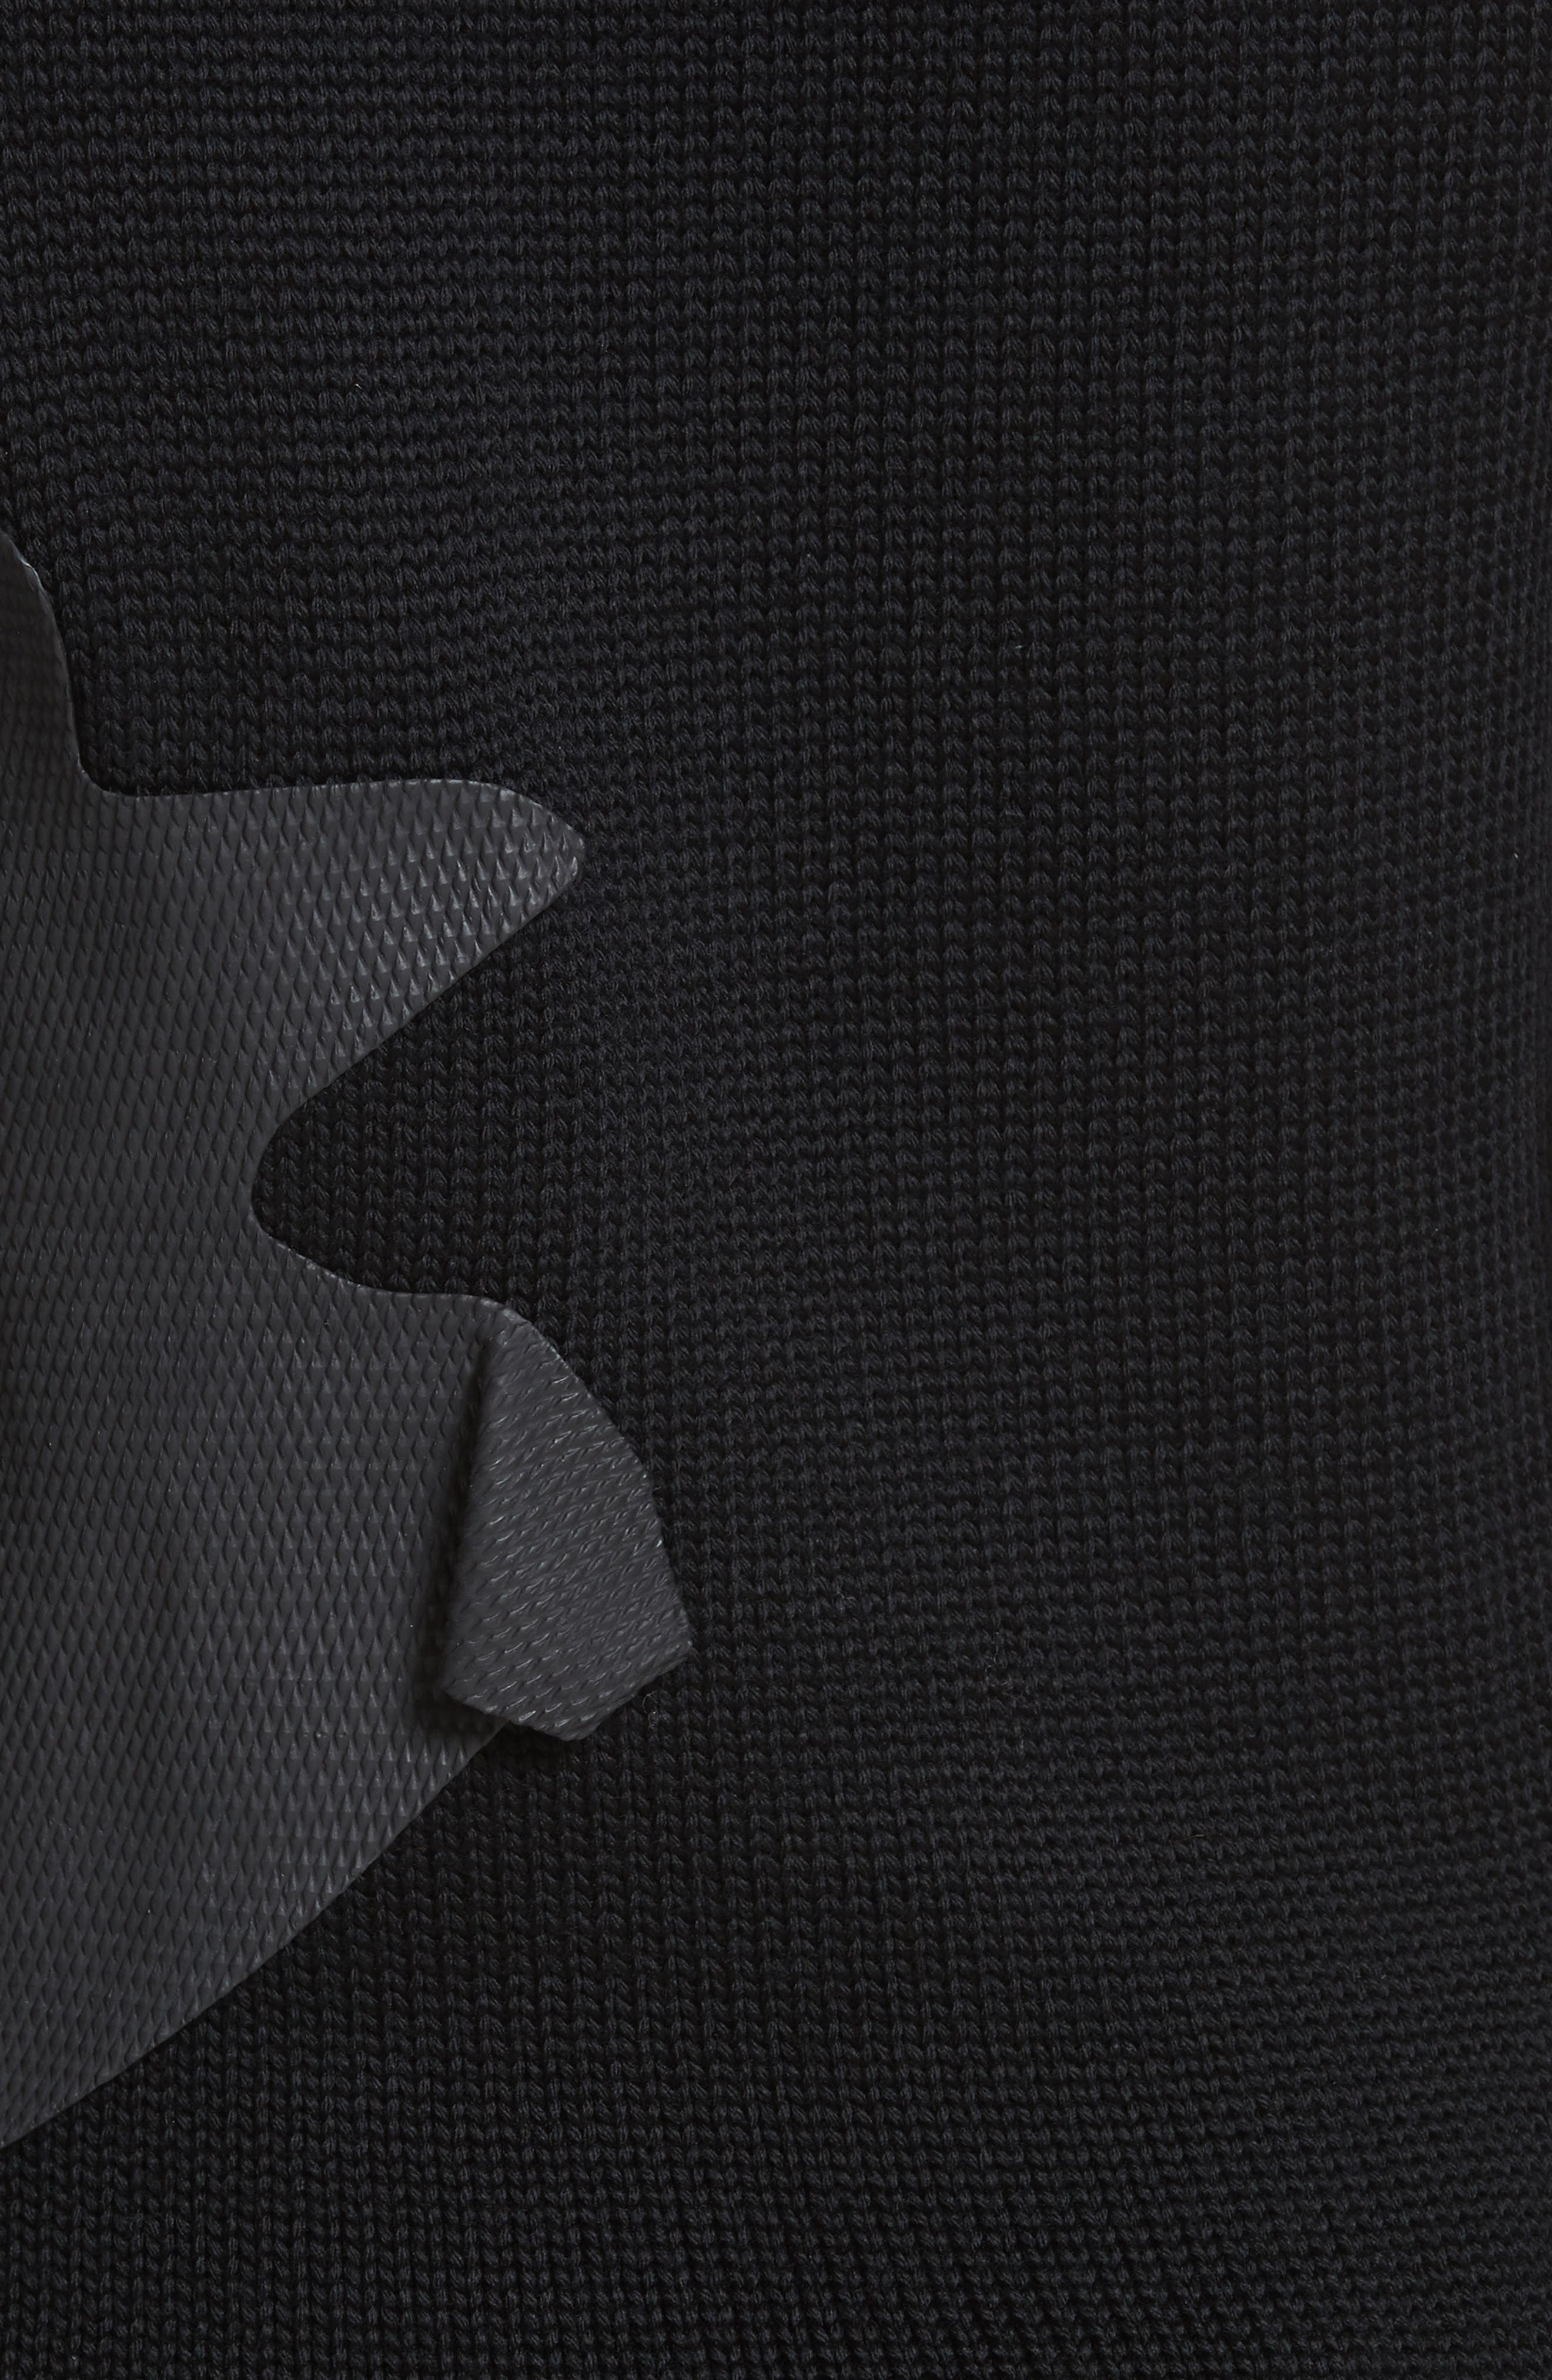 Rubber Detail Wool Sweater,                             Alternate thumbnail 5, color,                             003